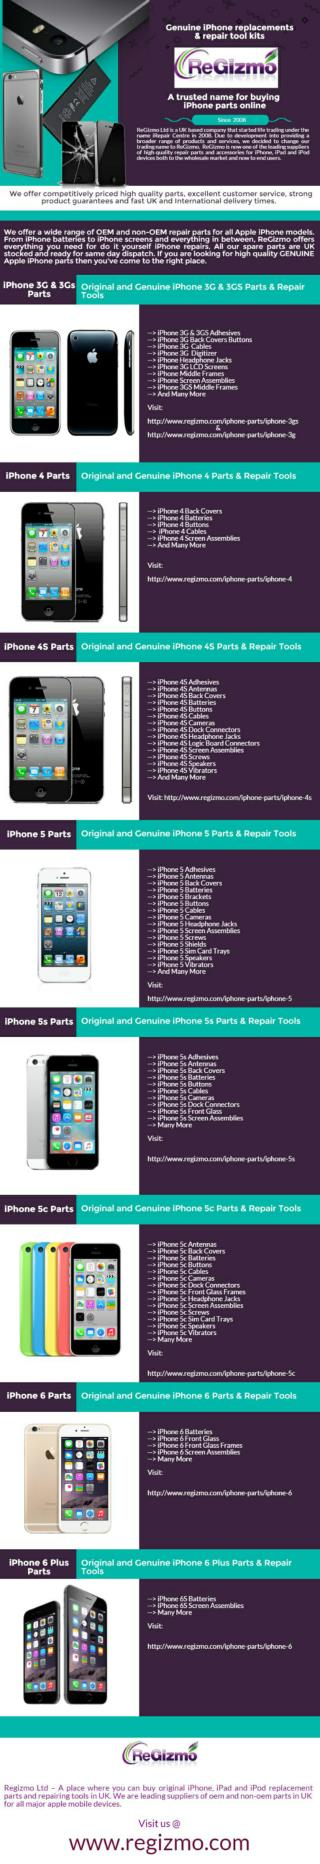 ReGizmo � Trusted name for buying iphone parts online in UK